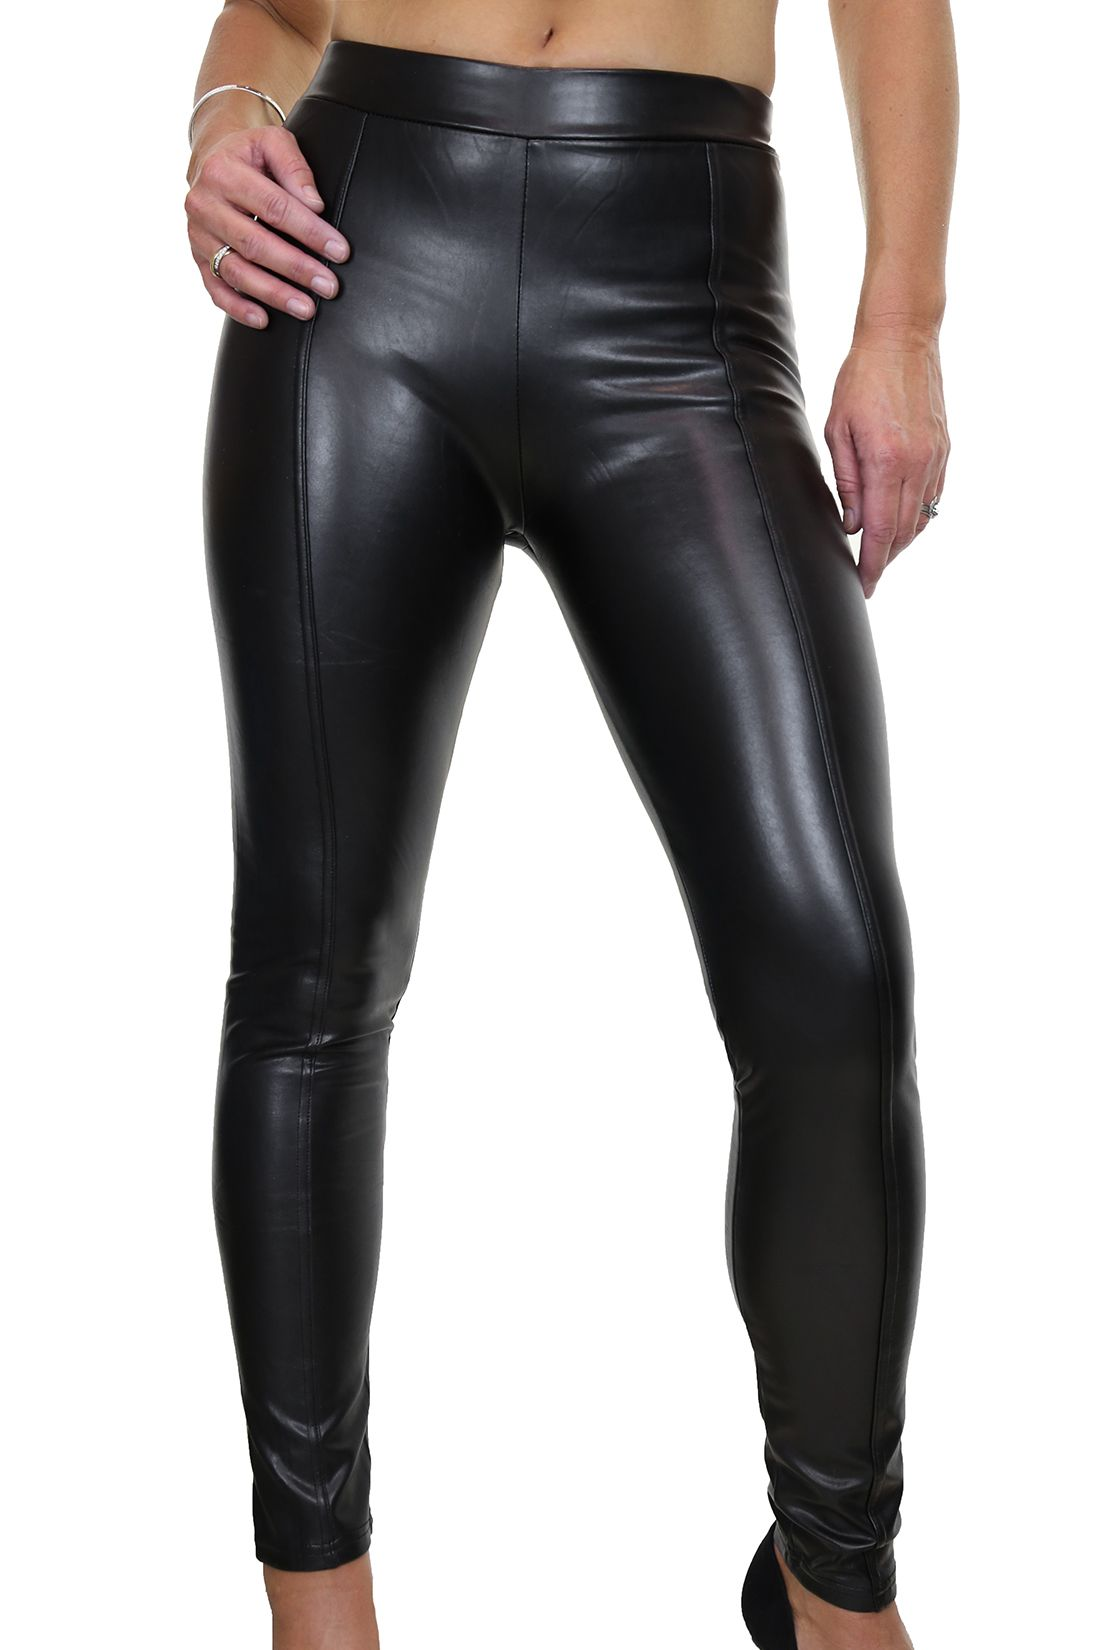 Black Skinny Faux Leather Jeggings Jeans